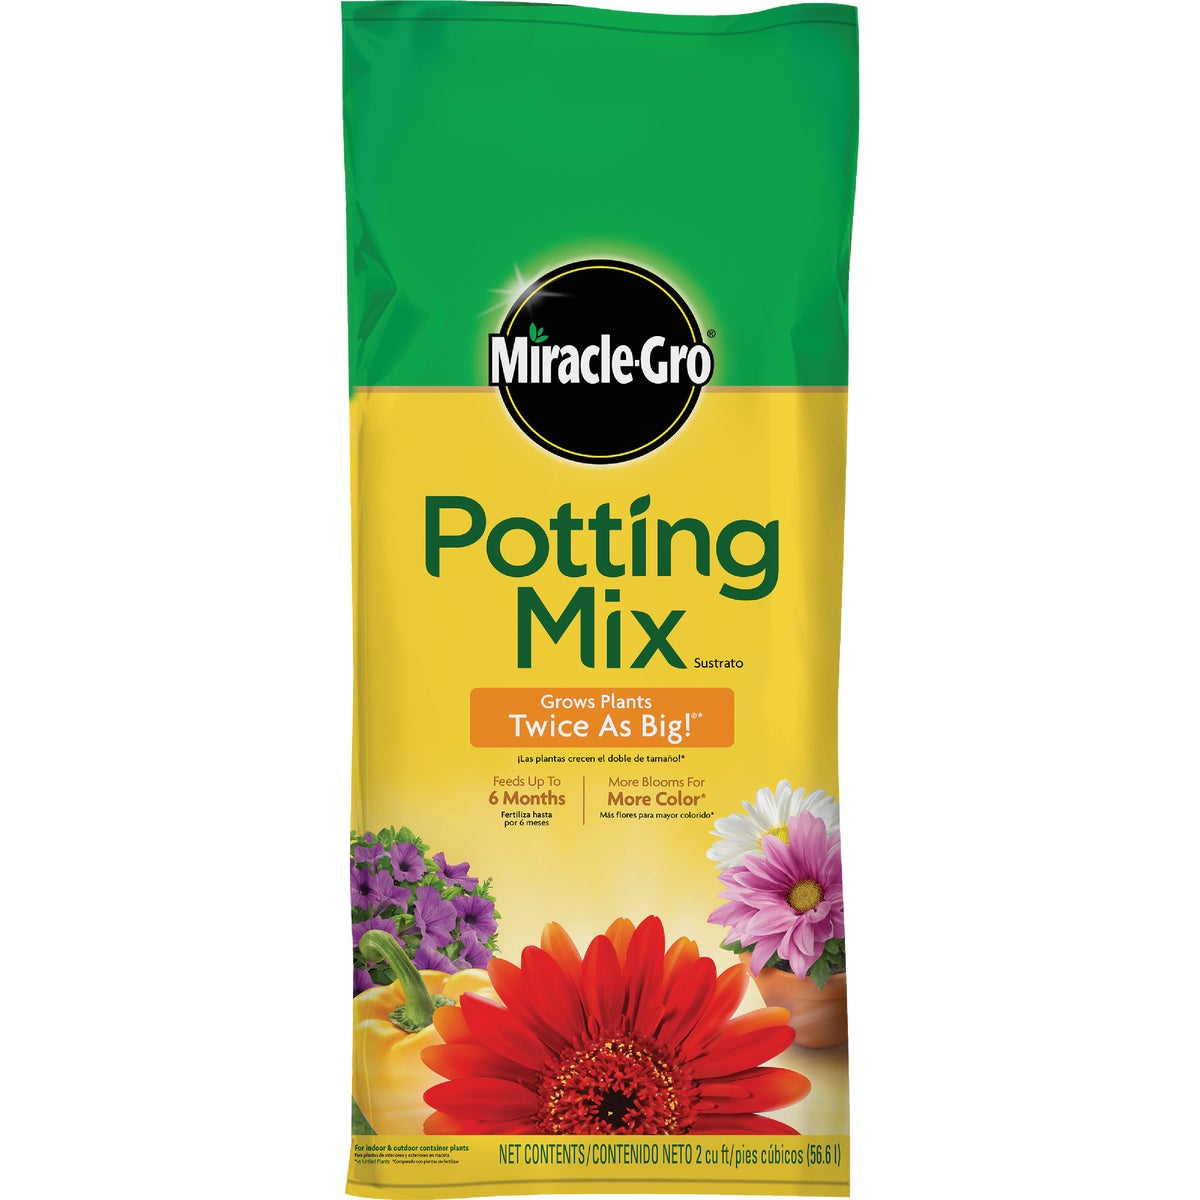 2 CU FT MGRO POTTING MIX - 75652300 by Scotts Organics